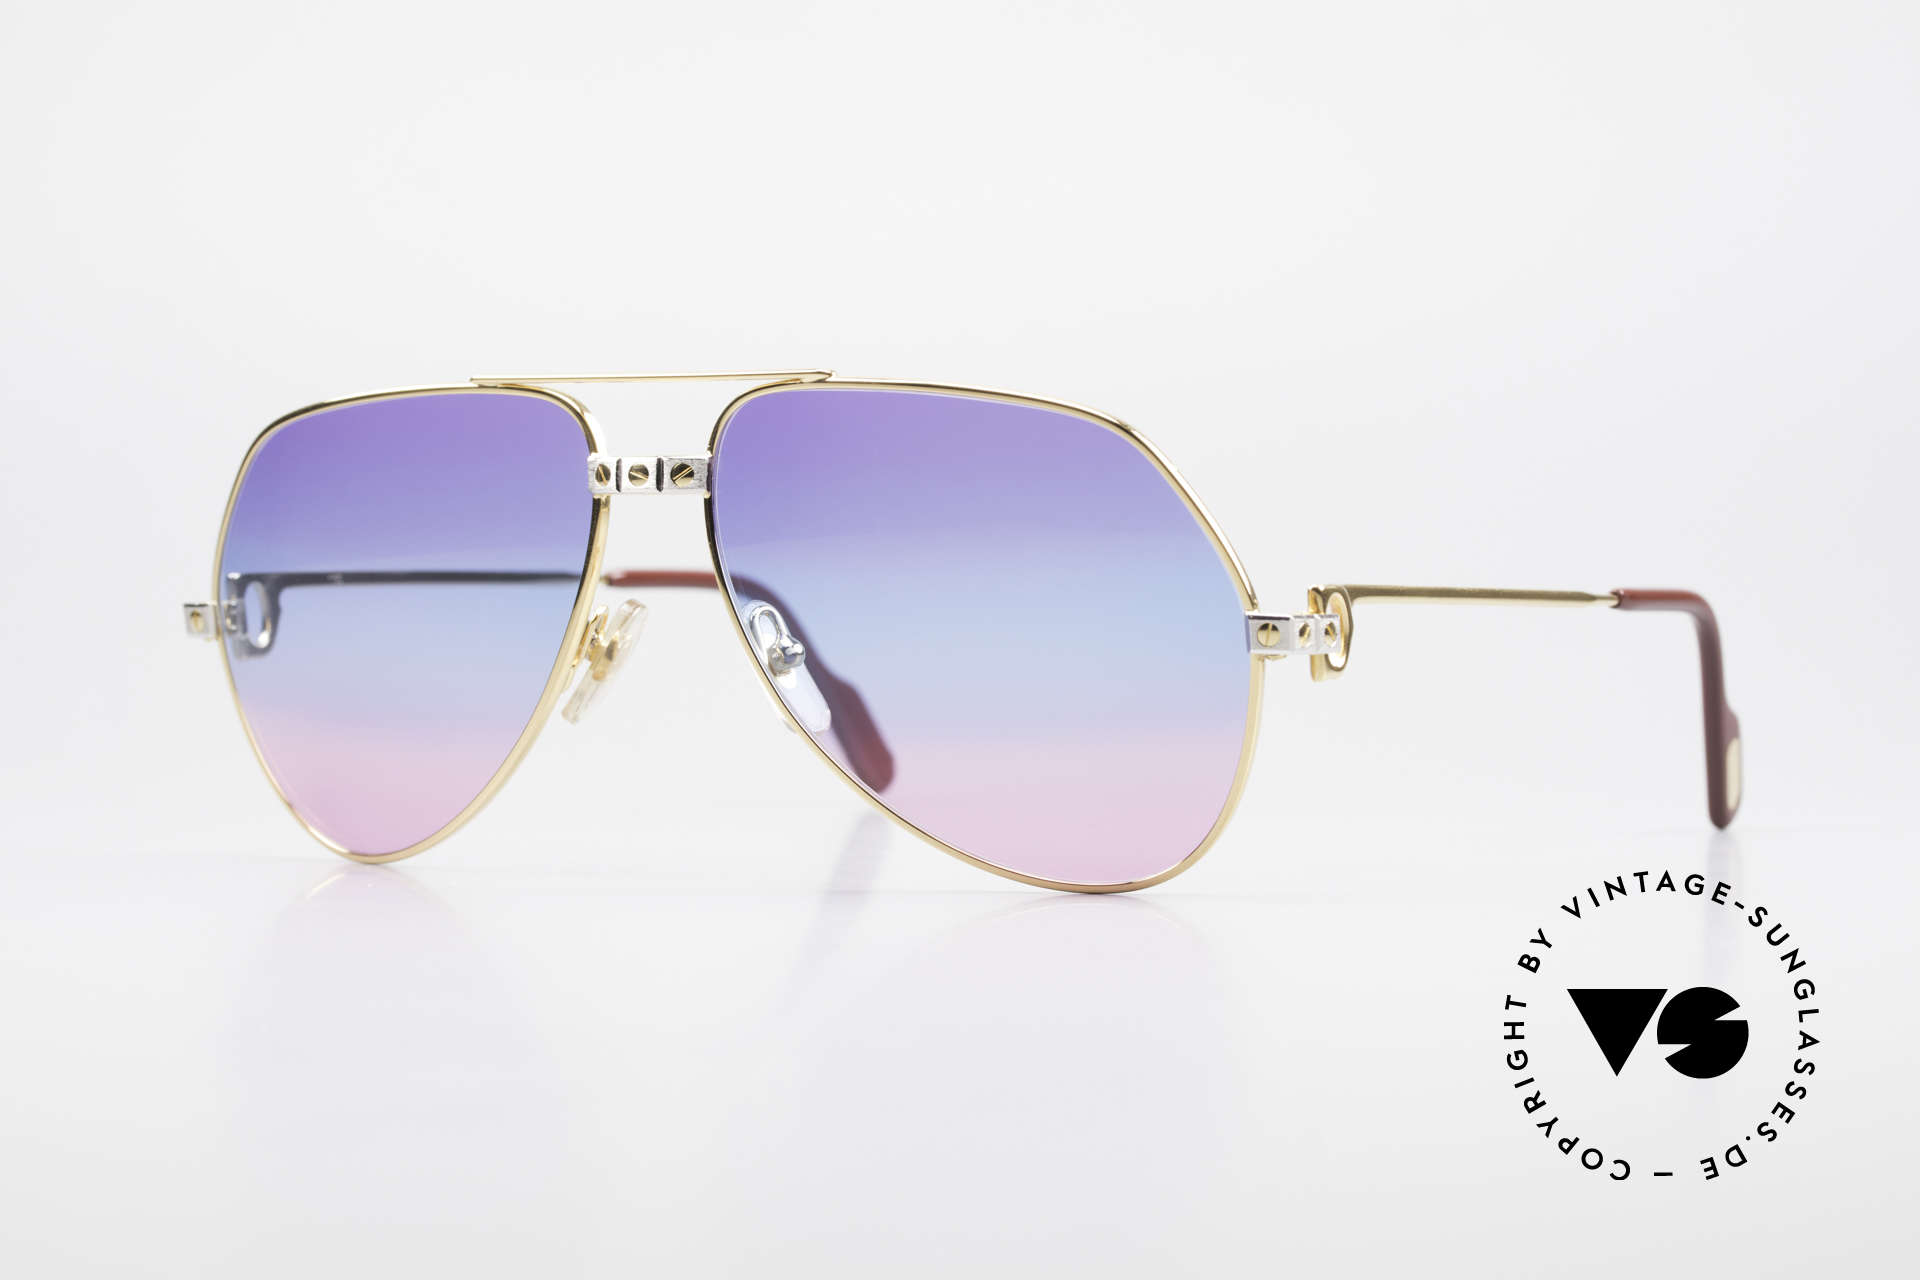 Cartier Vendome Santos - M One Of A Kind 80's Collectible, Vendome = the most famous eyewear design by CARTIER, Made for Men and Women